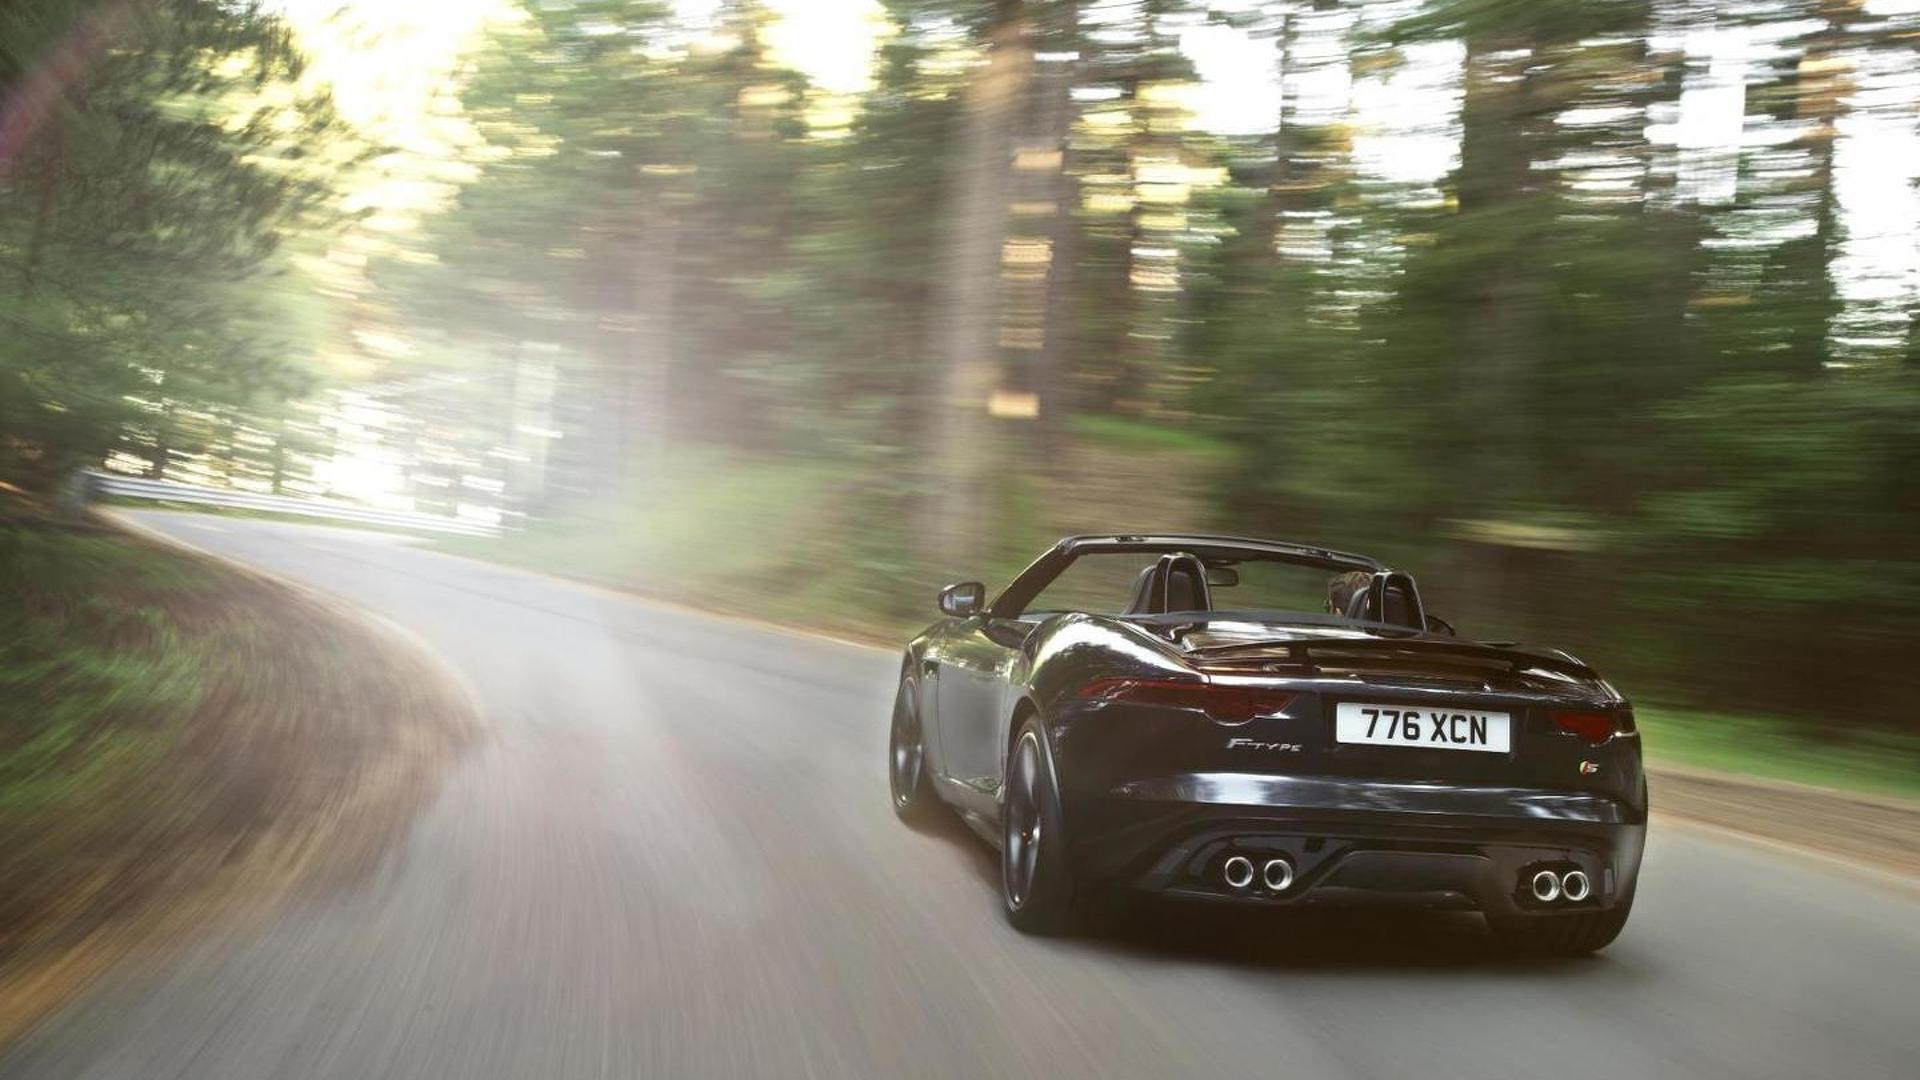 Jaguar already has 2,000+ orders for F-Type